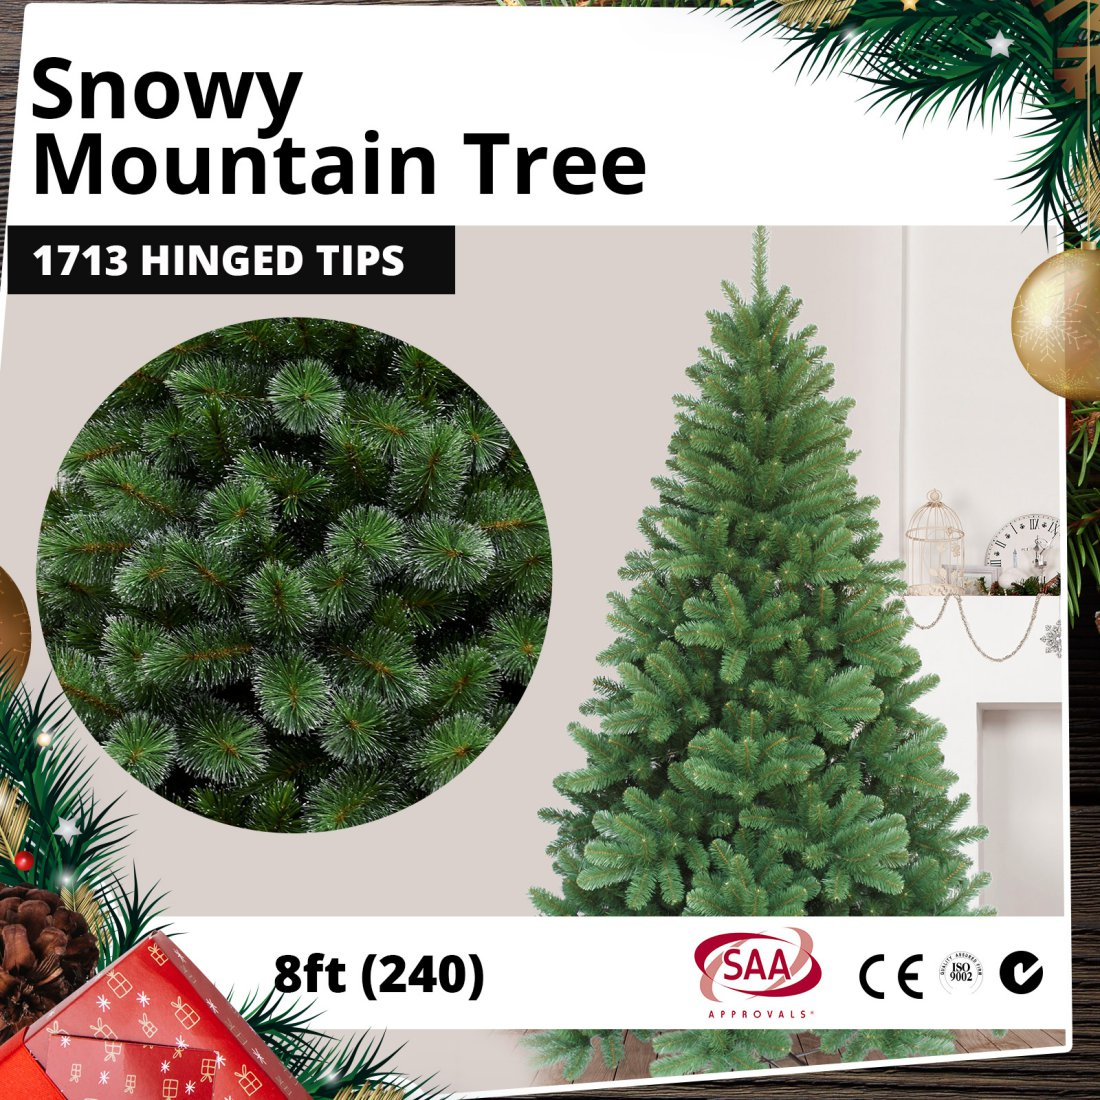 Huge Deluxe Christmas Tree Tuscan Spruce 240cm 8ft